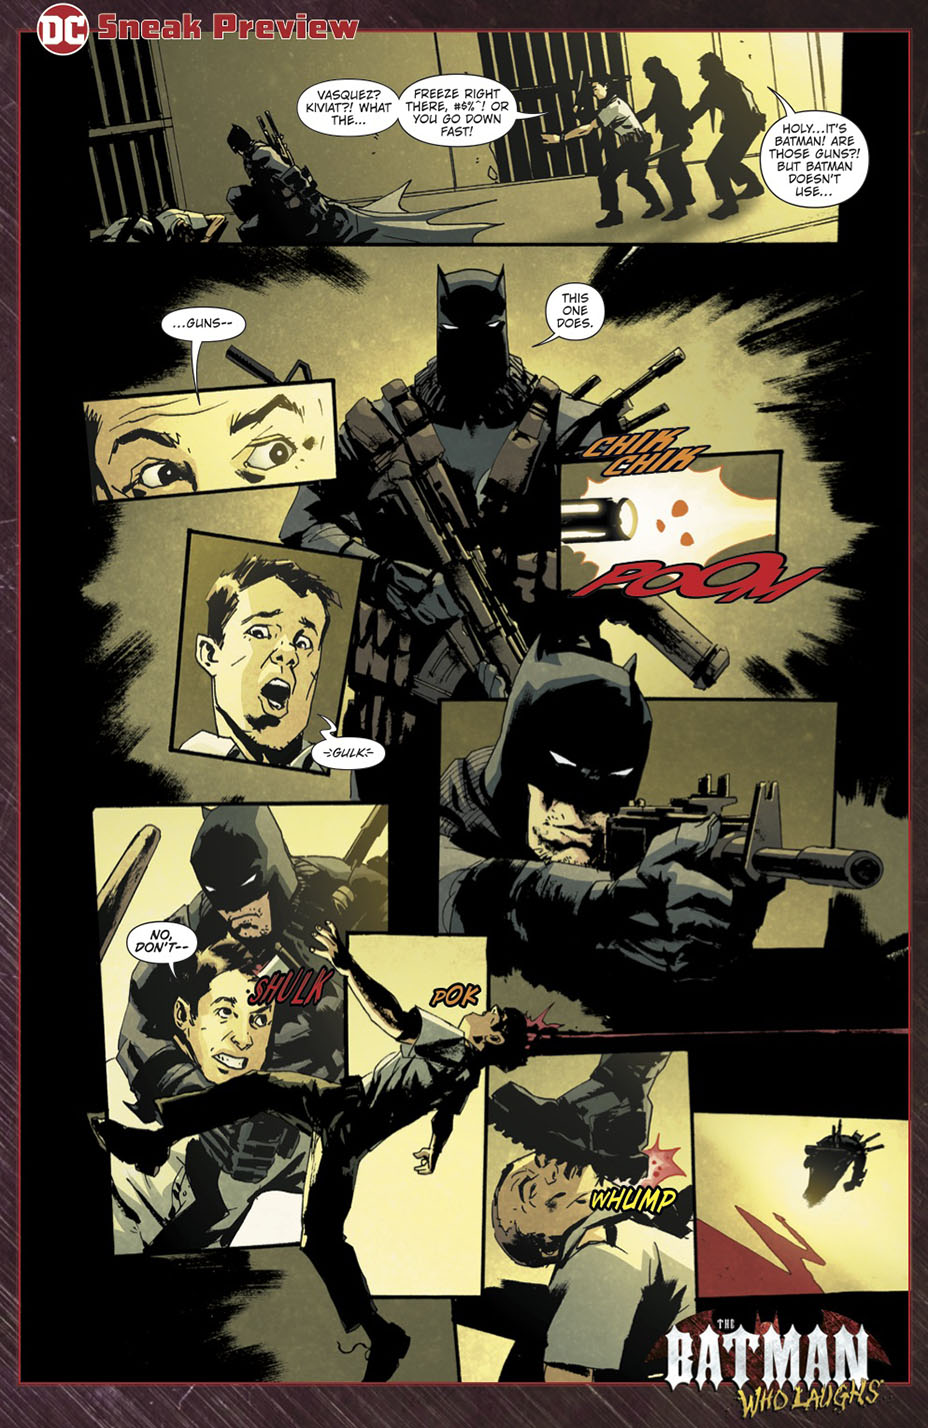 batman_who_laughs_preview-publicity-embed_3-2018